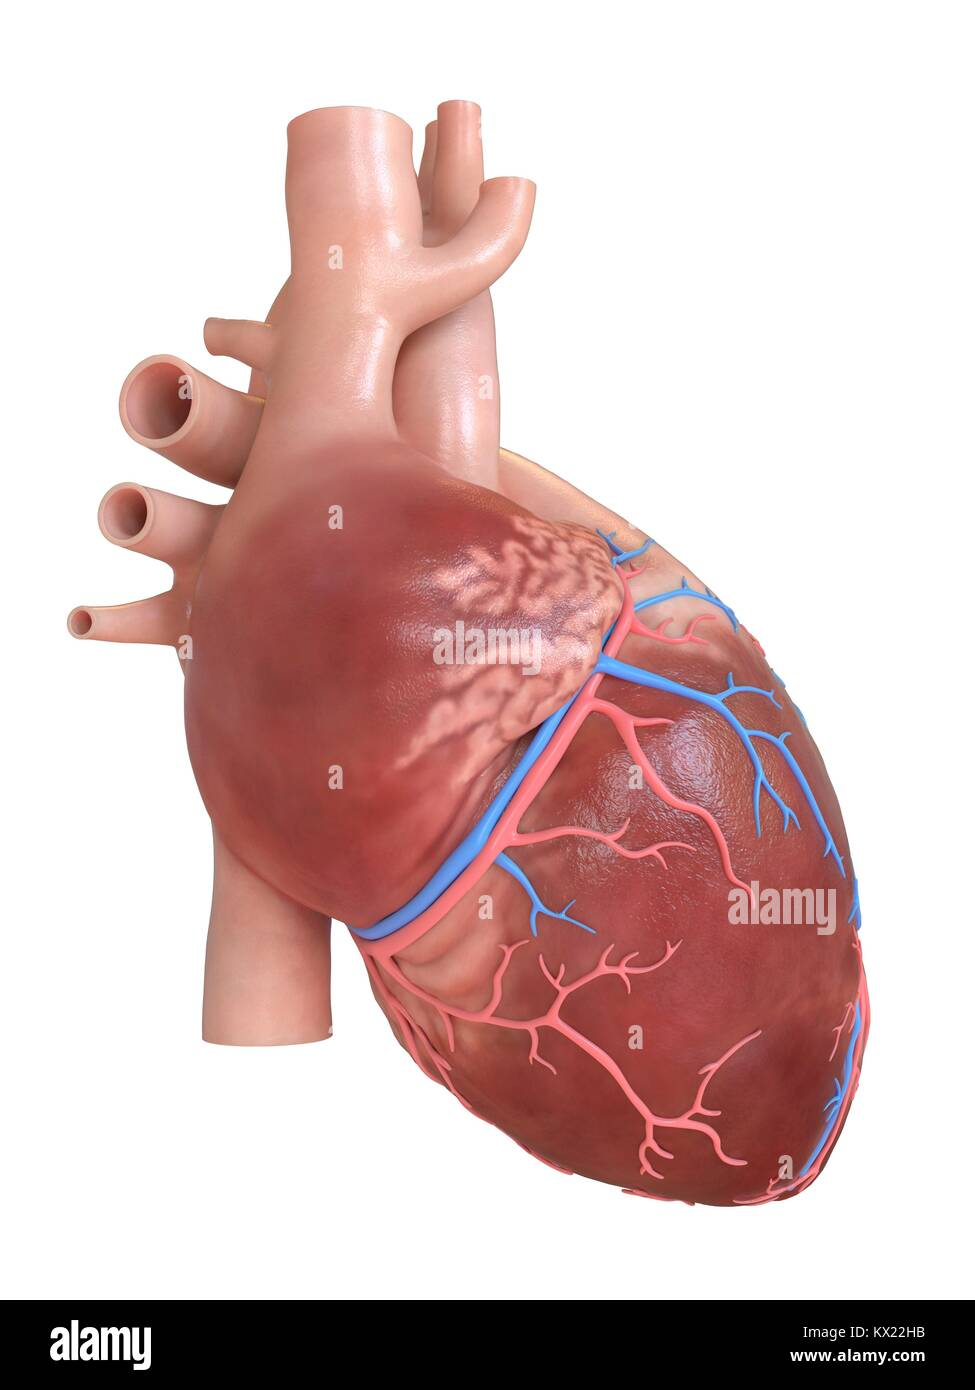 The Arteries And The Heart Stockfotos & The Arteries And The Heart ...